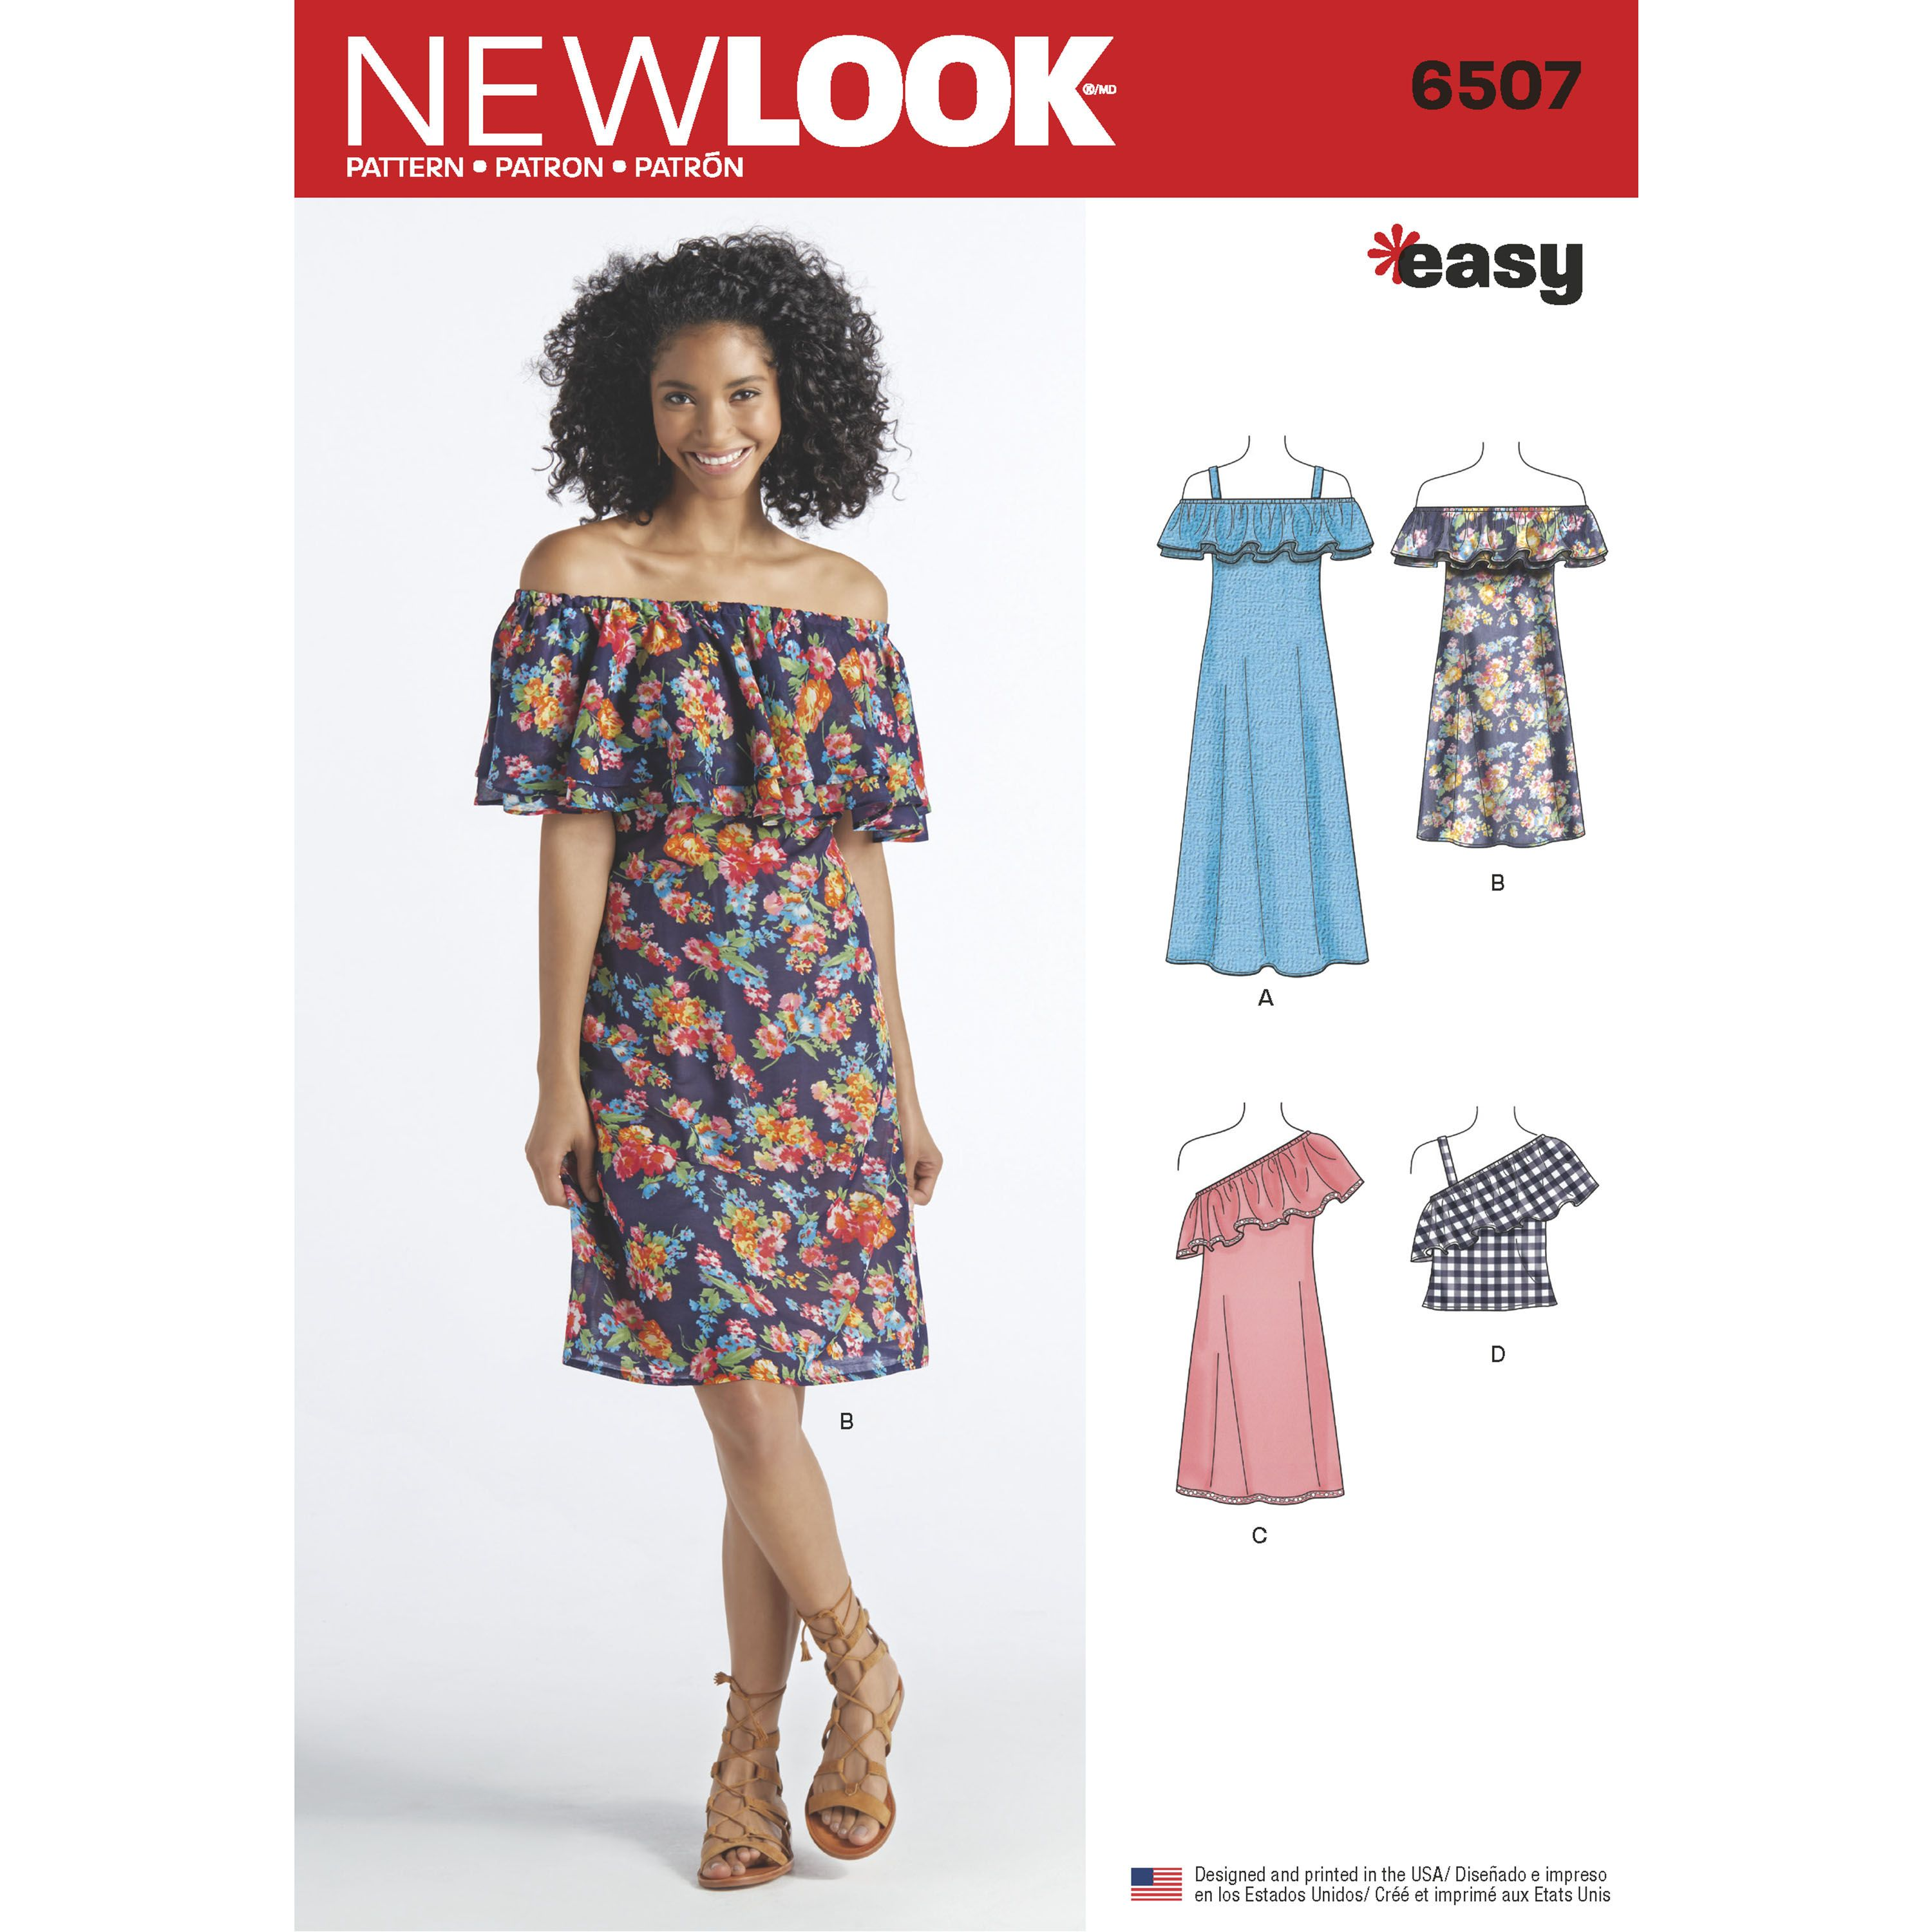 Purchase New Look 6507 Misses Dresses And Top And Read Its